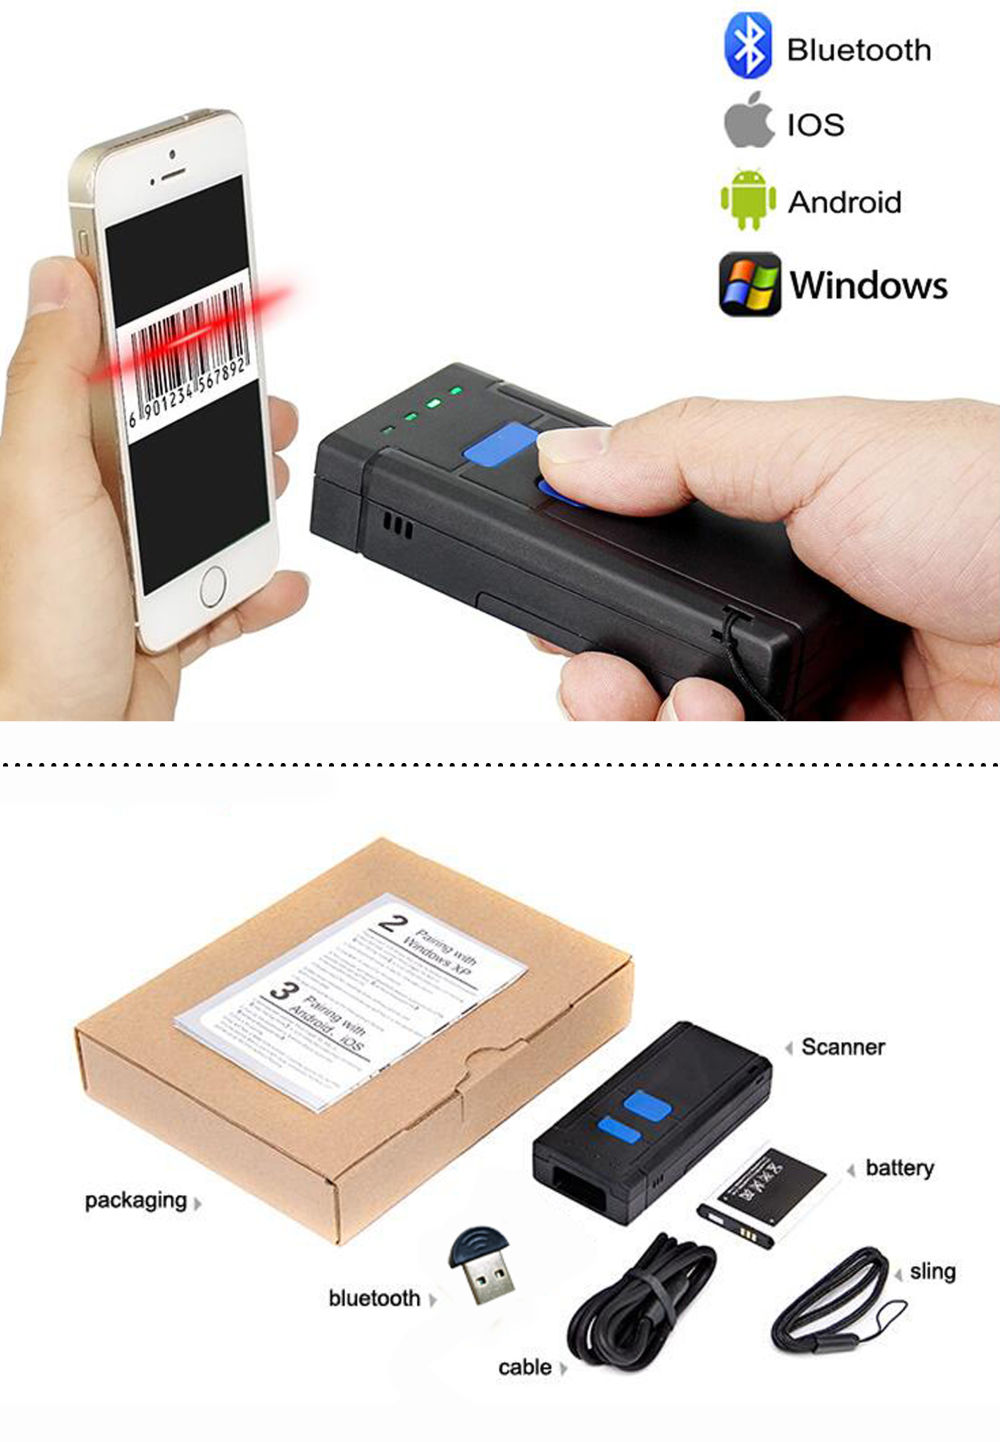 Shop for 1D Portable CCD Red Light Wireless Bluetooth